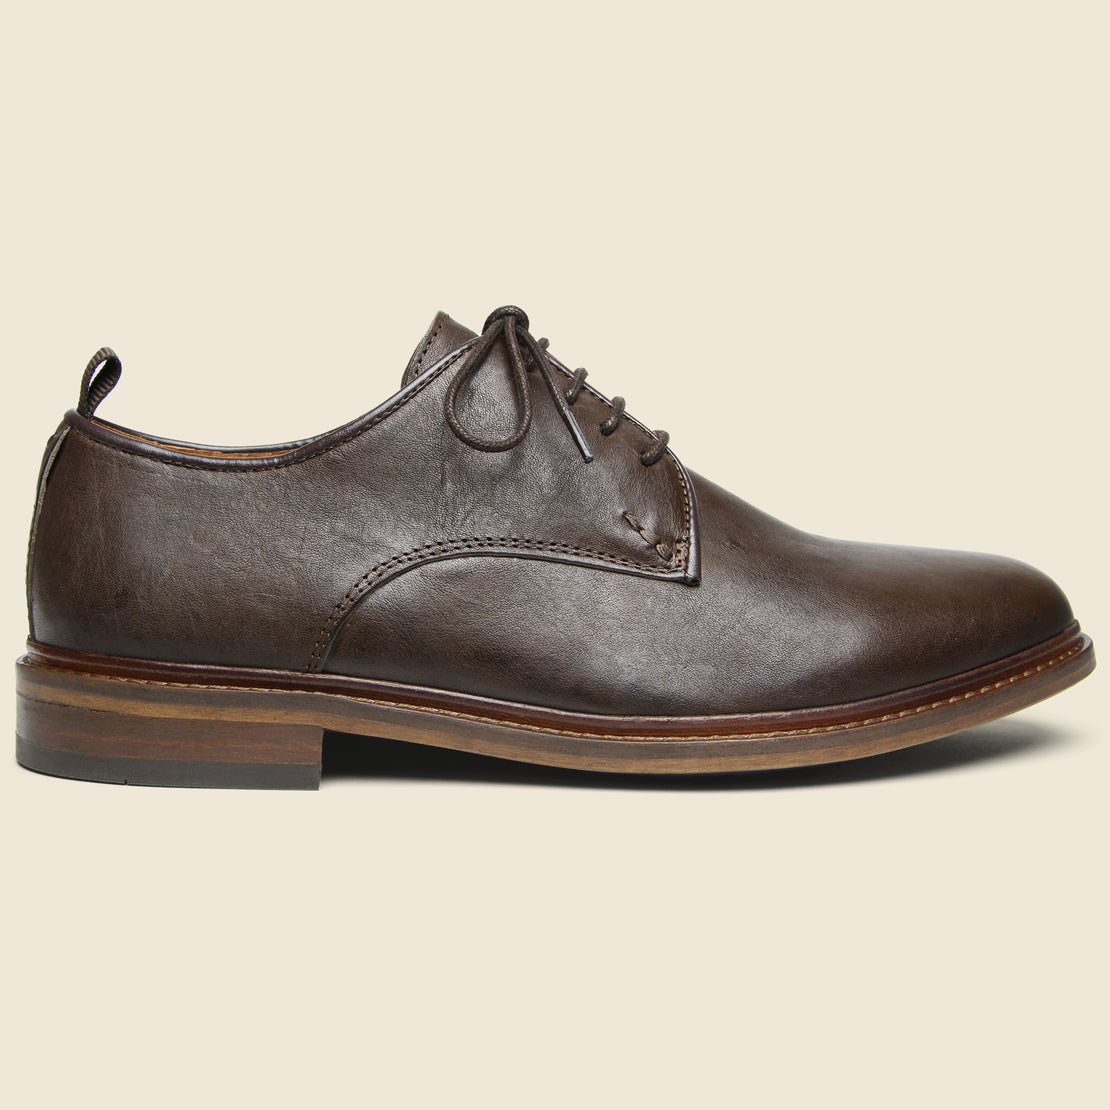 Shoe the Bear Nate Leather Oxford - Light Brown